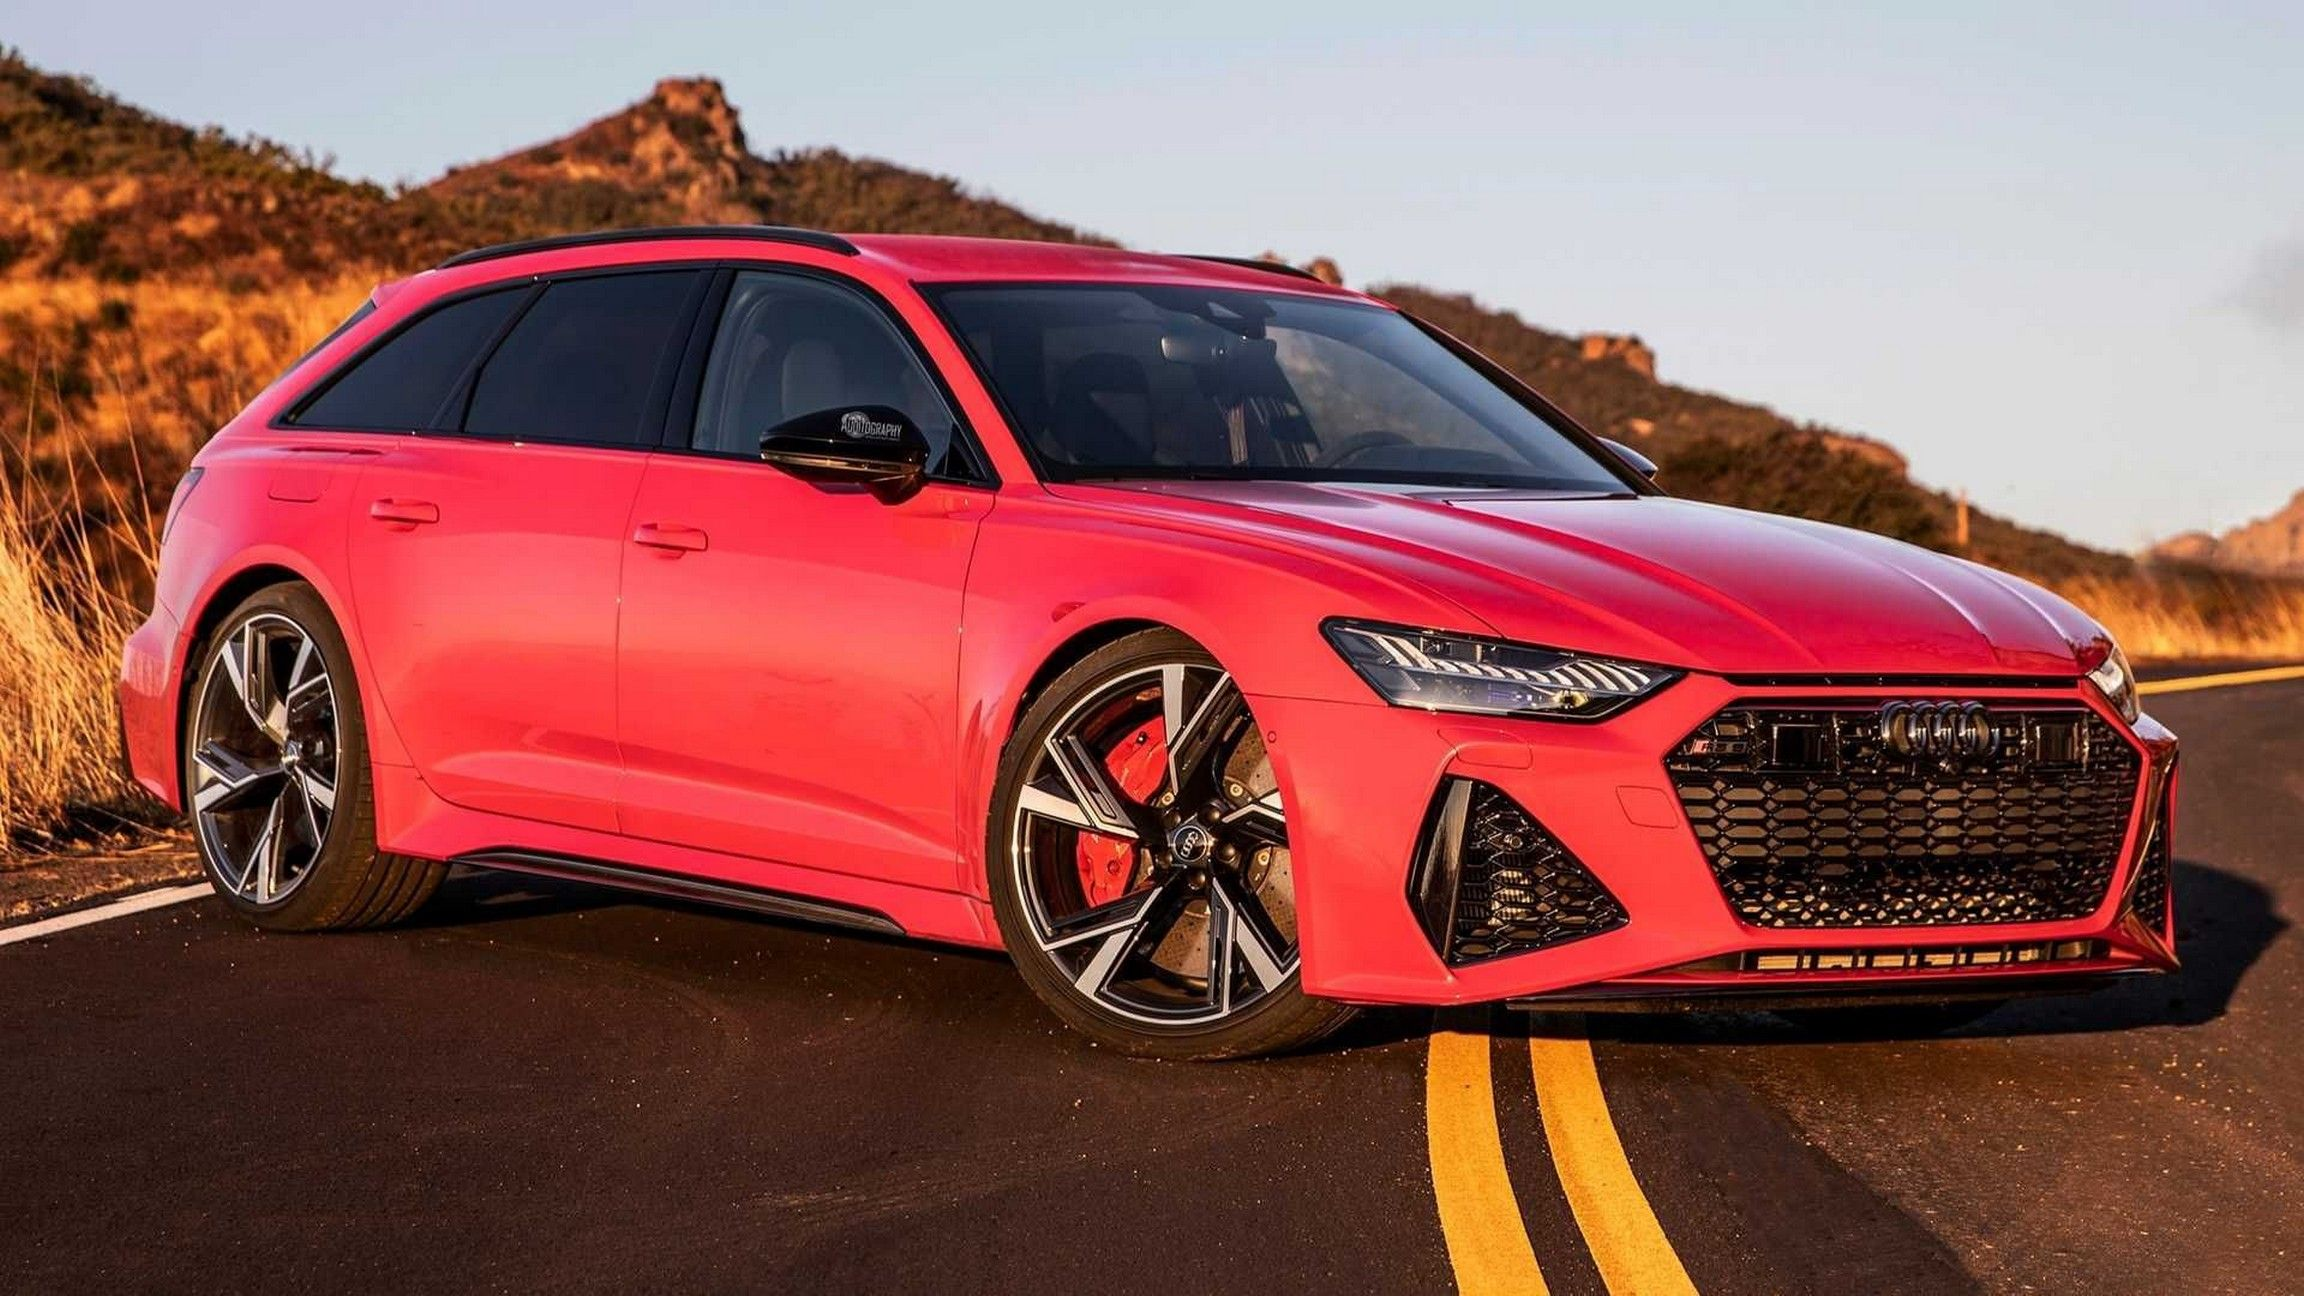 2021 Audi Rs 6 Owners Manual Audi Audi Rs6 Wagon Audi Rs6